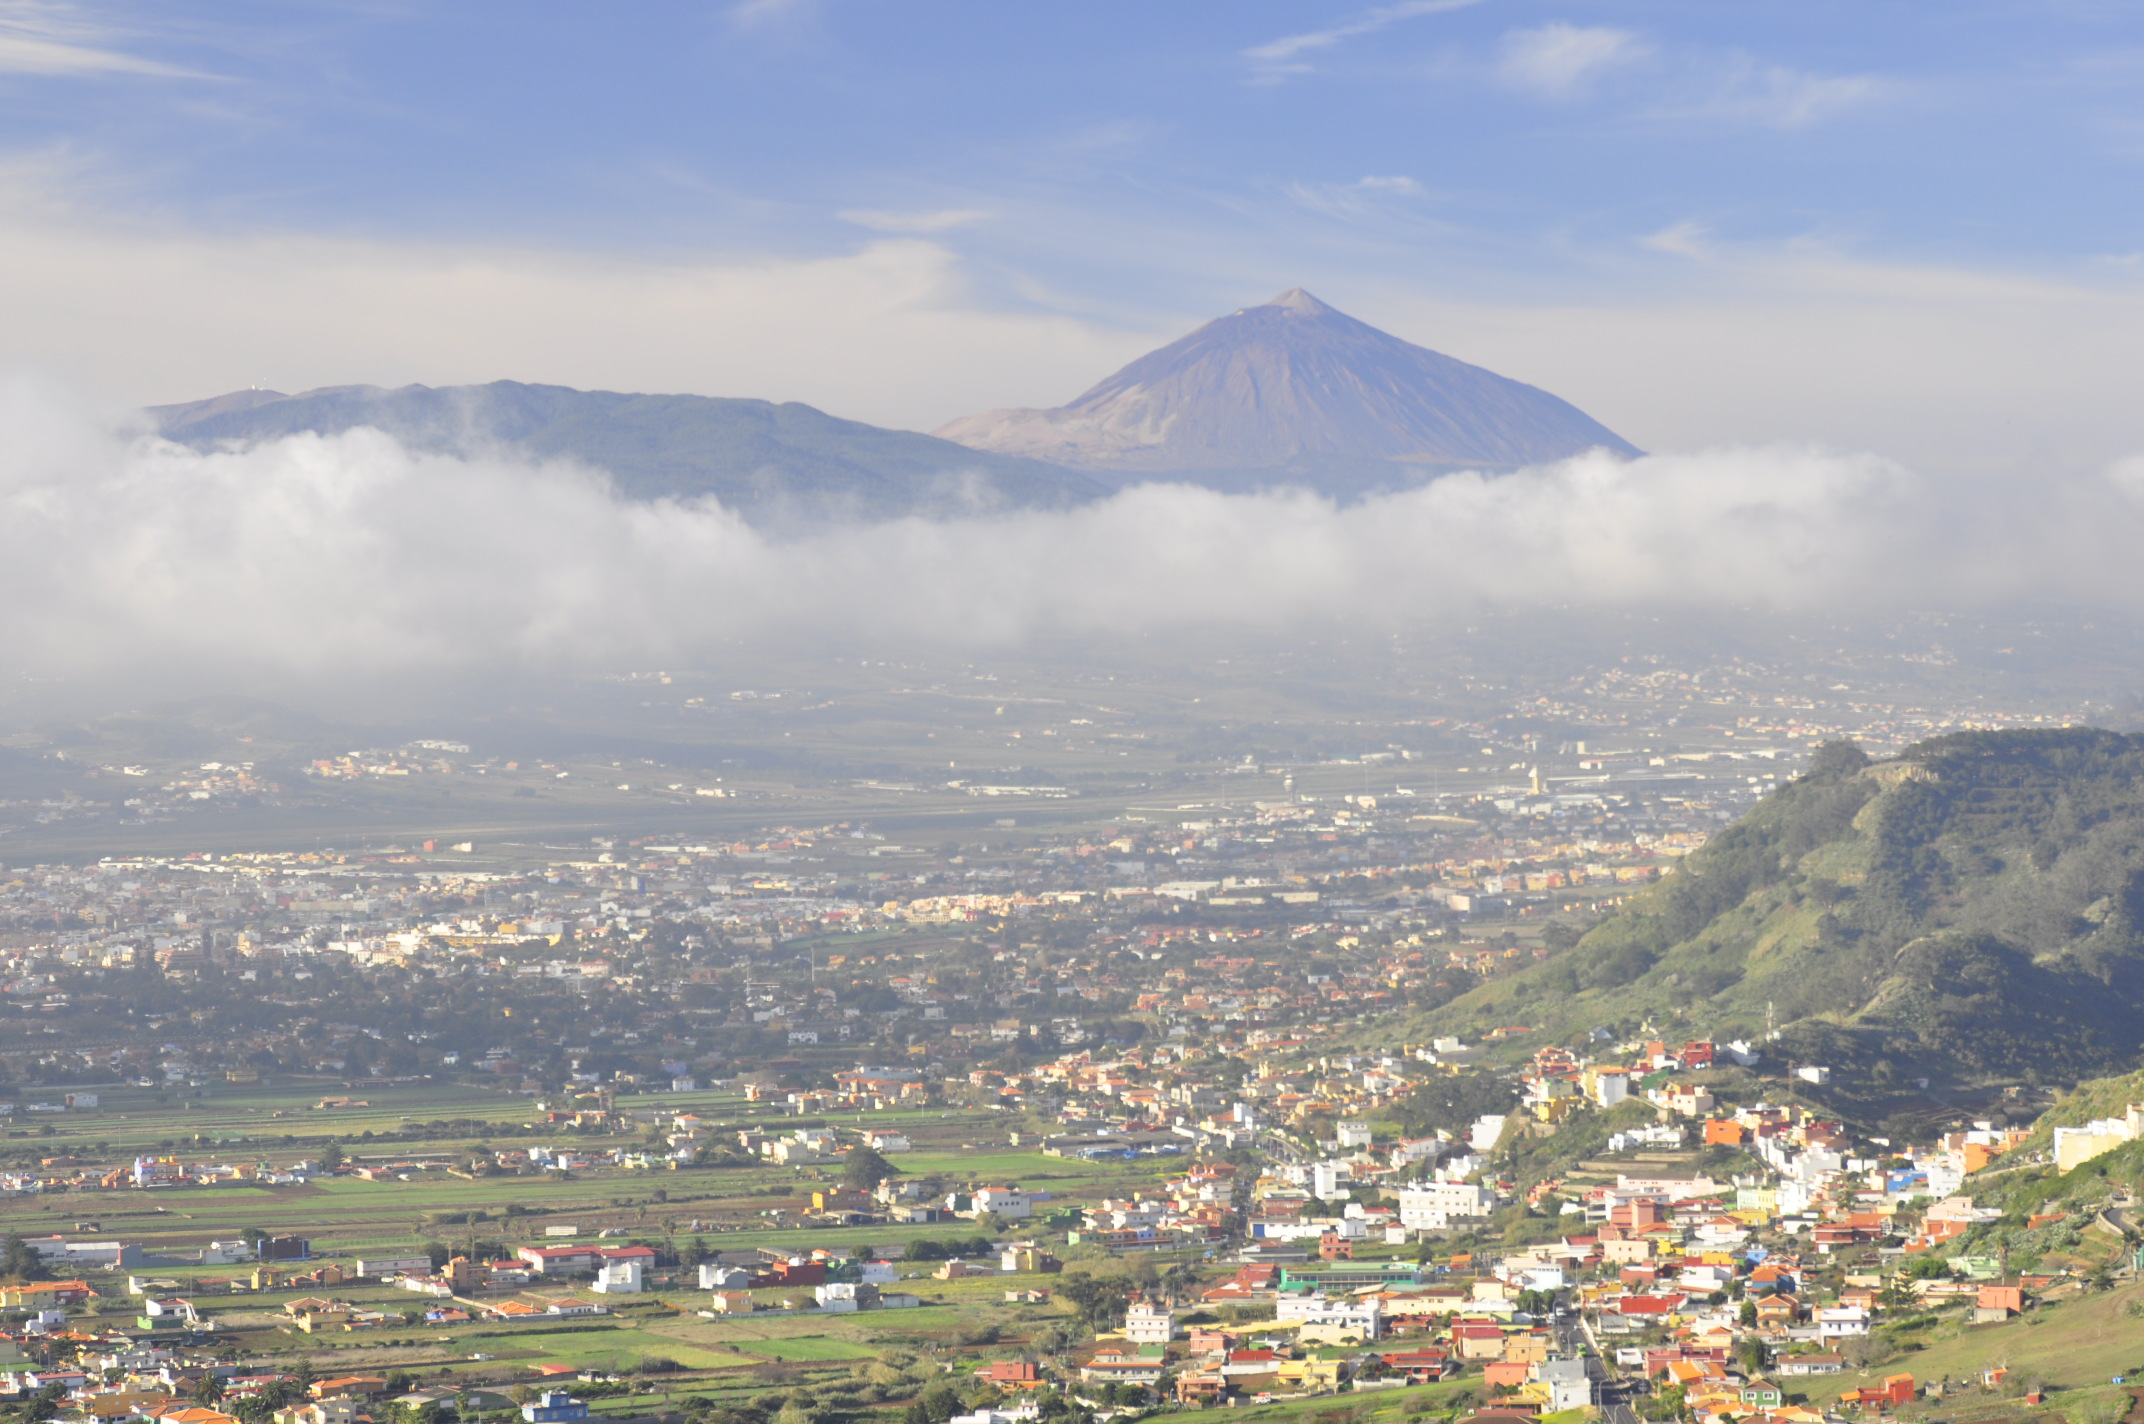 El Teide, towering high over La Laguna and Los Rodeos airport.